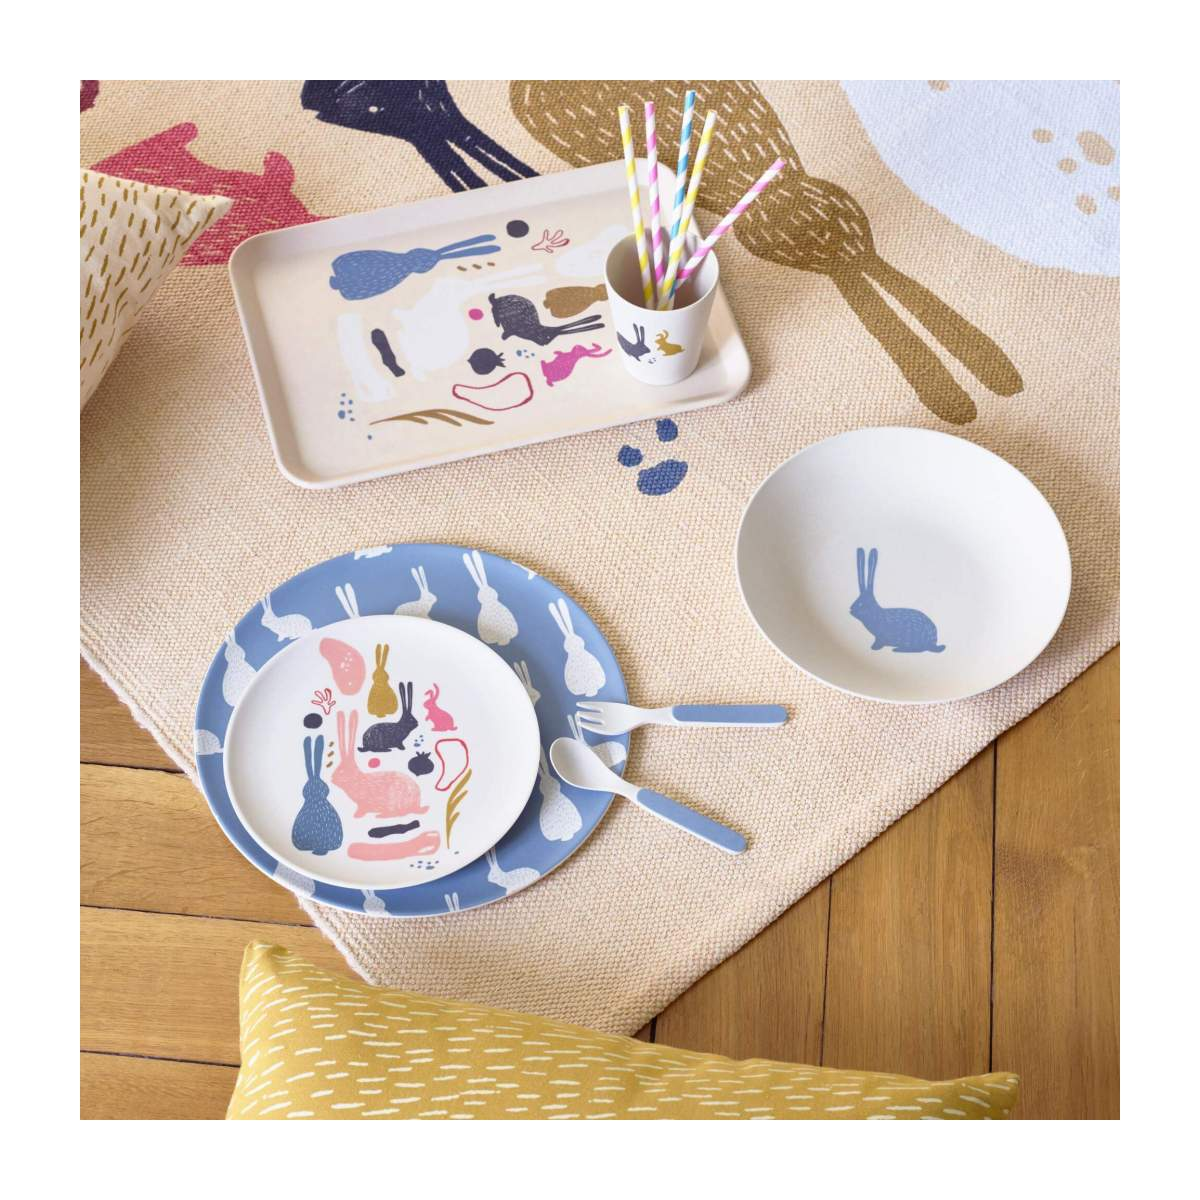 Fork and spoon for children n°4